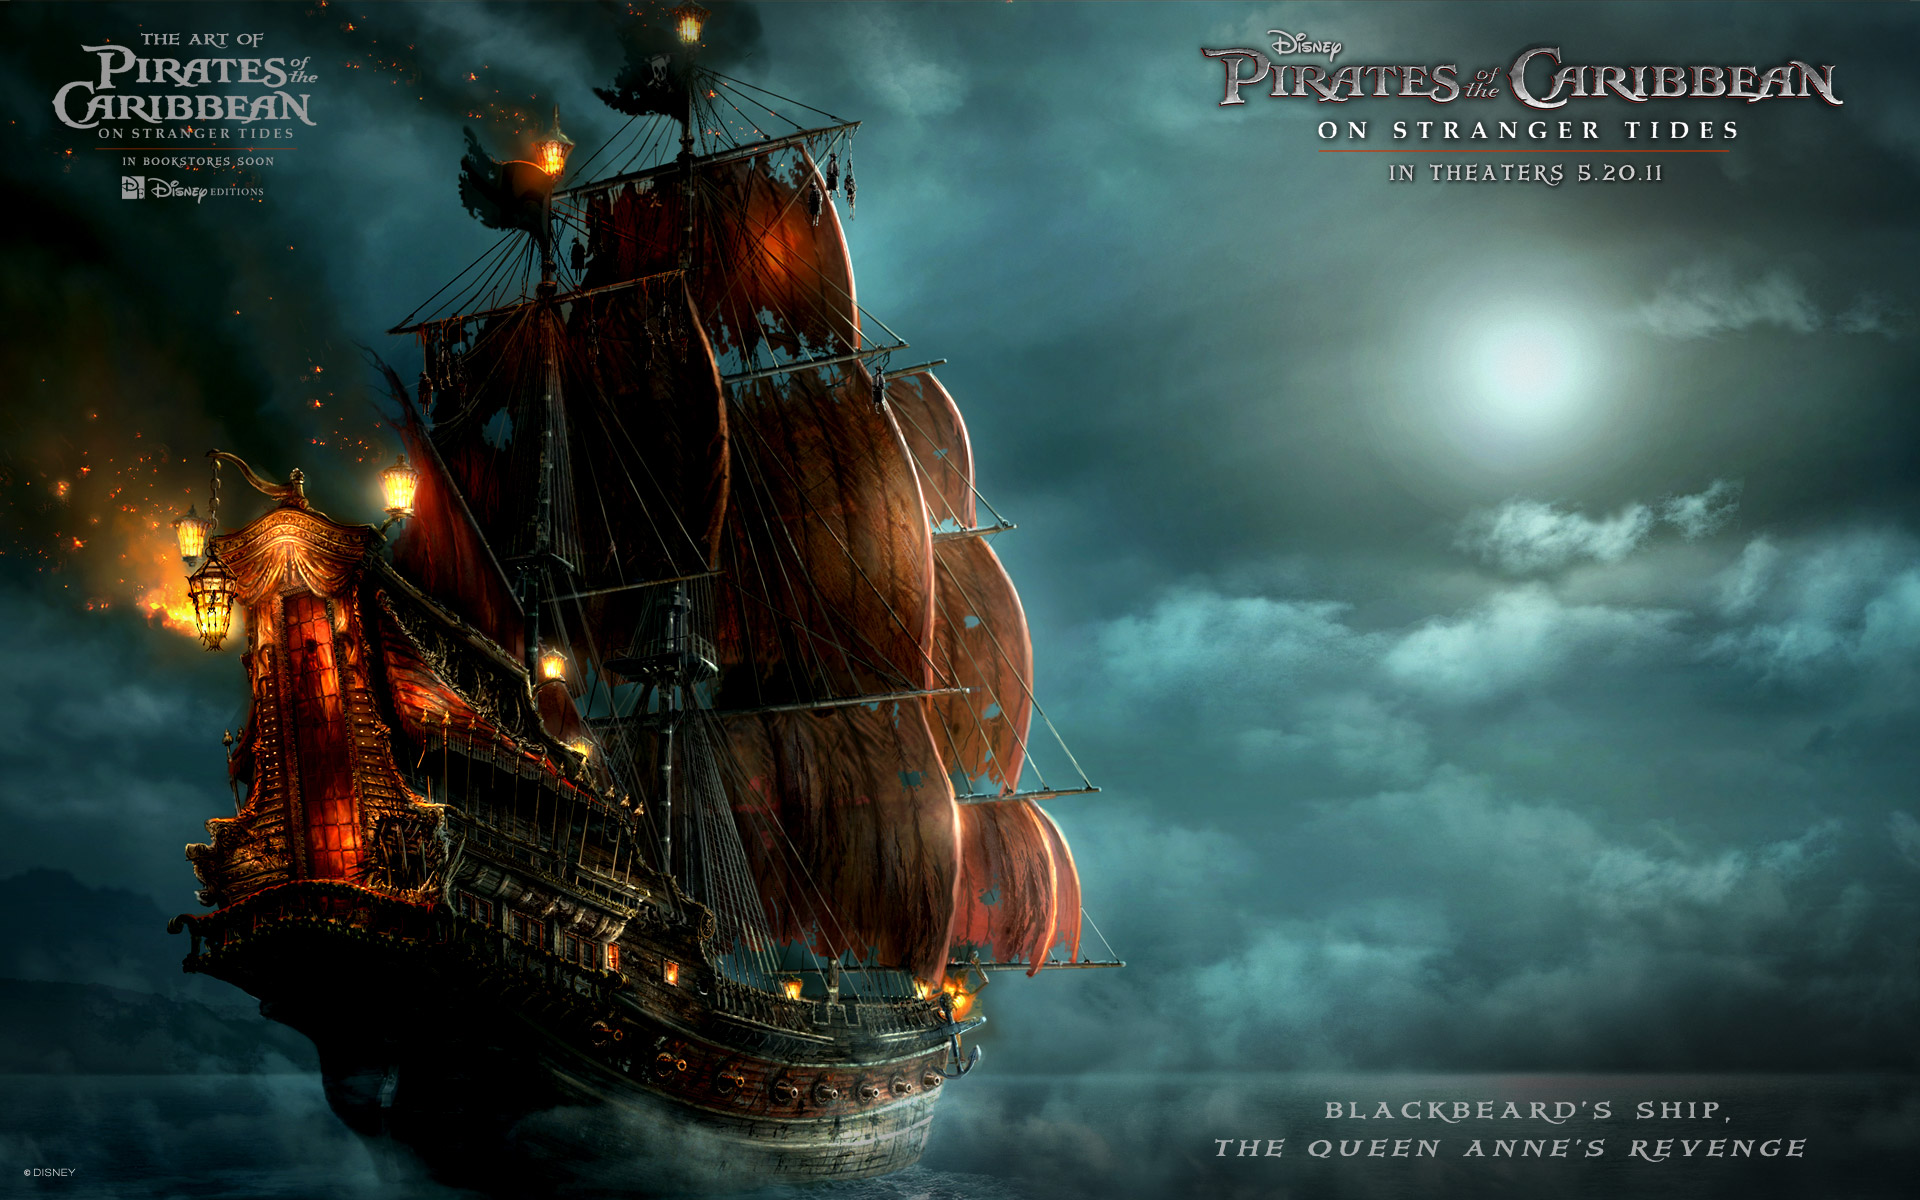 Blackbeard's Ship in Pirates Of The Caribbean 4 281.41 Kb